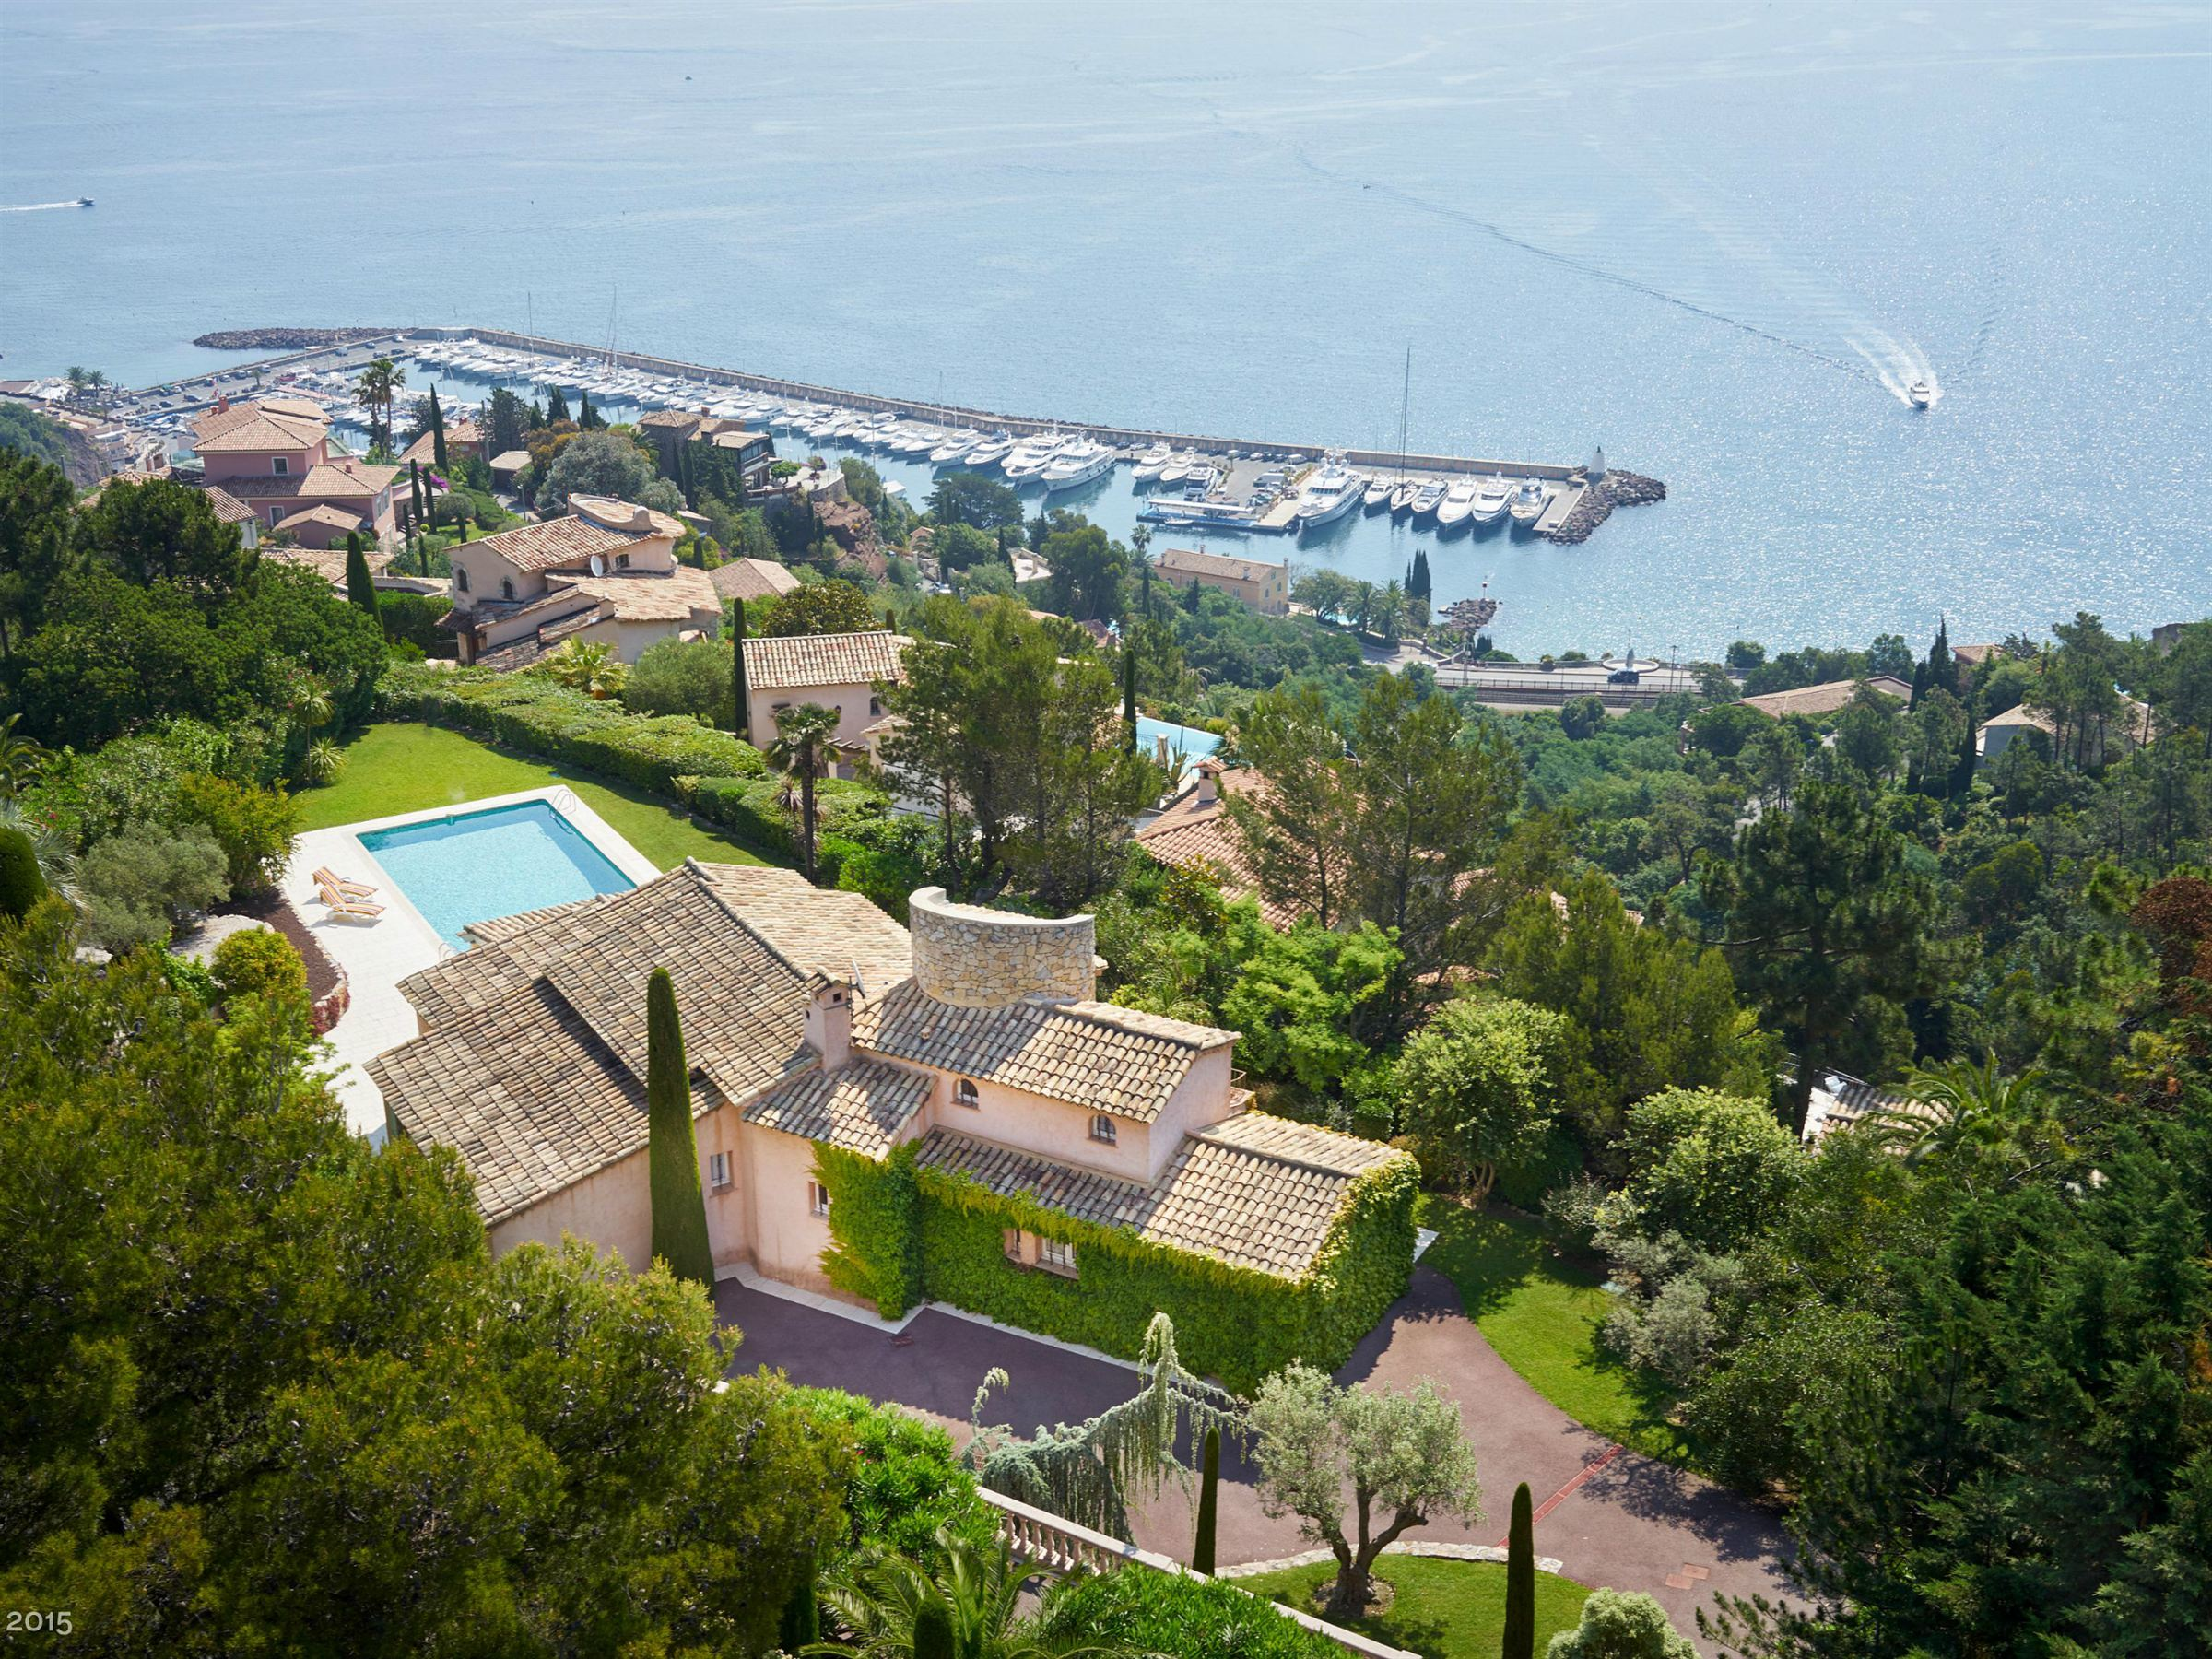 Single Family Home for Sale at Wonderful provençal house with panoramic sea views Theoule Sur Mer, Provence-Alpes-Cote D'Azur, 06590 France